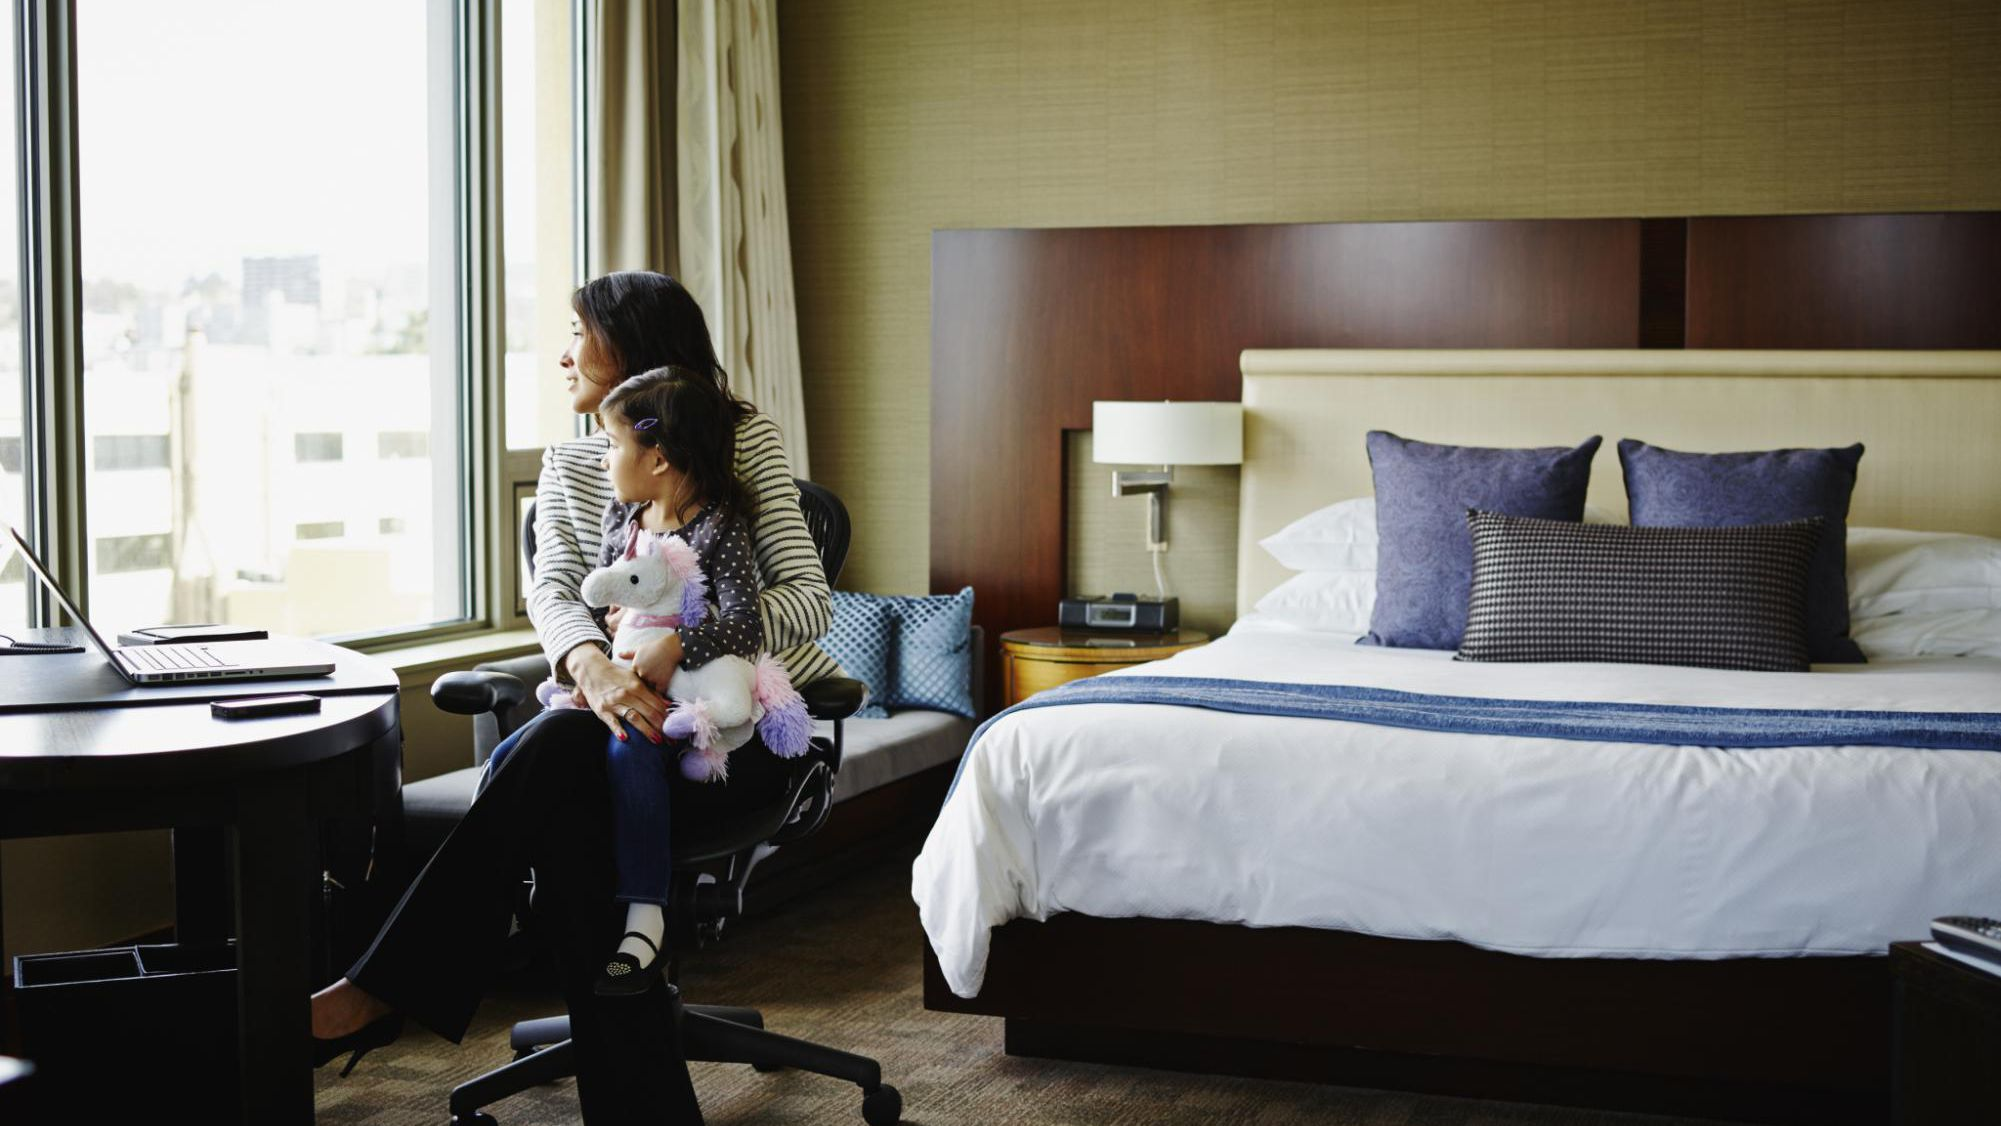 The Secrets to Finding Lower Hotel Rates